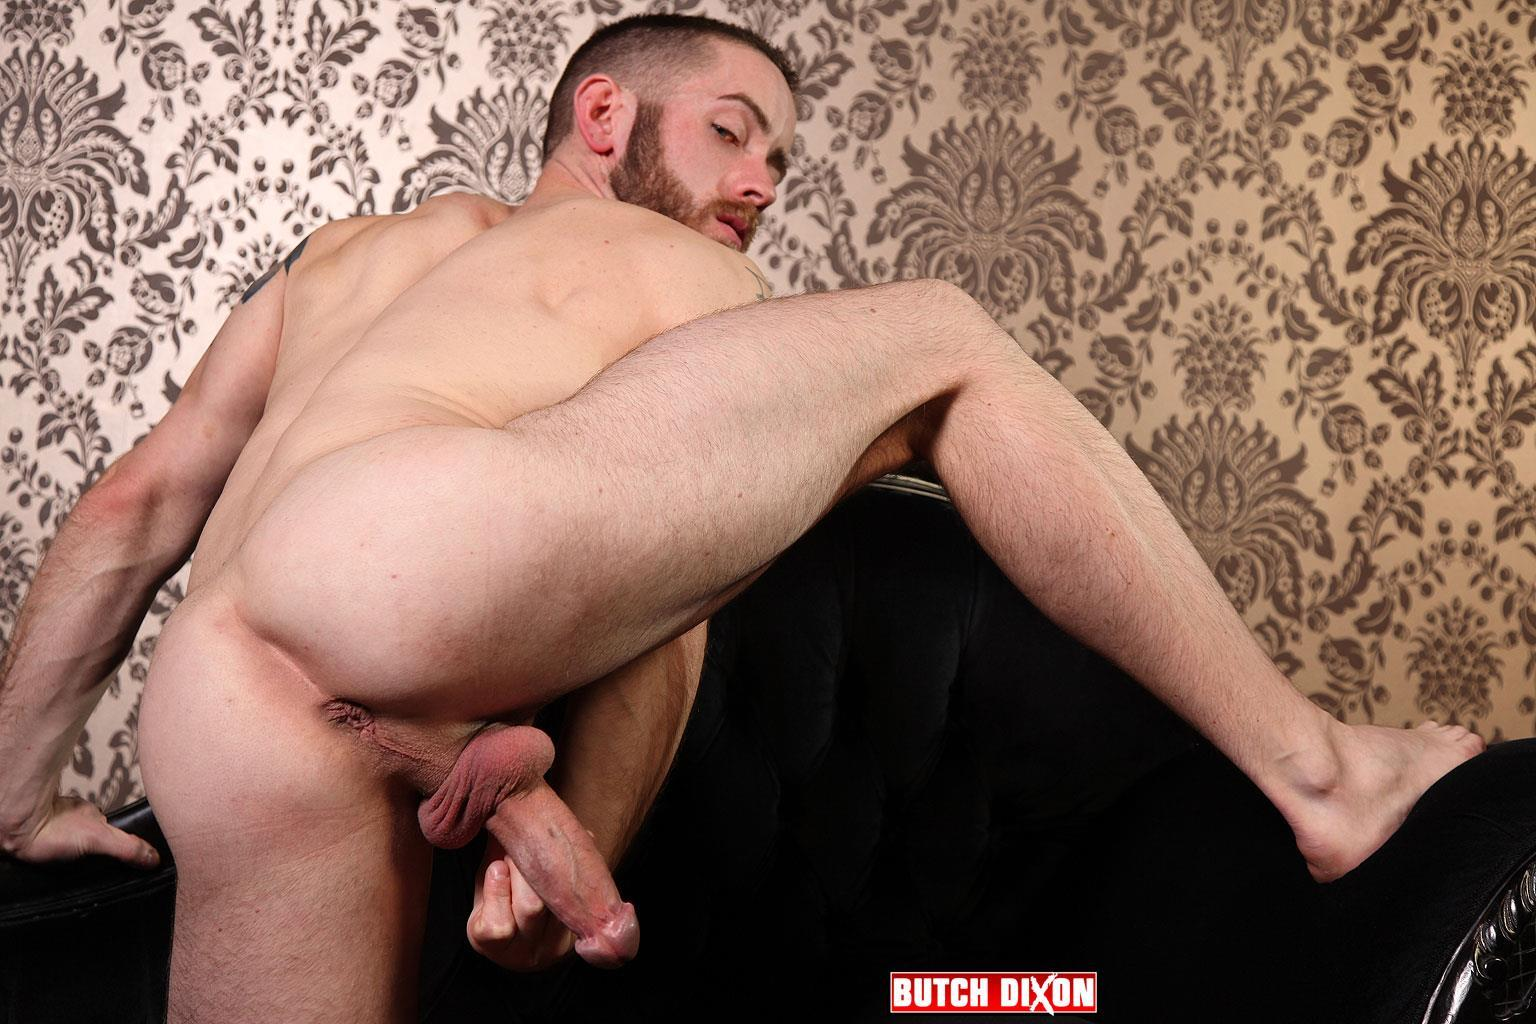 Butch Dixon Alfie Stone and Bruno Fox Big Cock Masculine Gays Fucking Amateur Gay Porn 17 Freaky Amateur Hairy Masculine Men Fucking With Thick Cocks